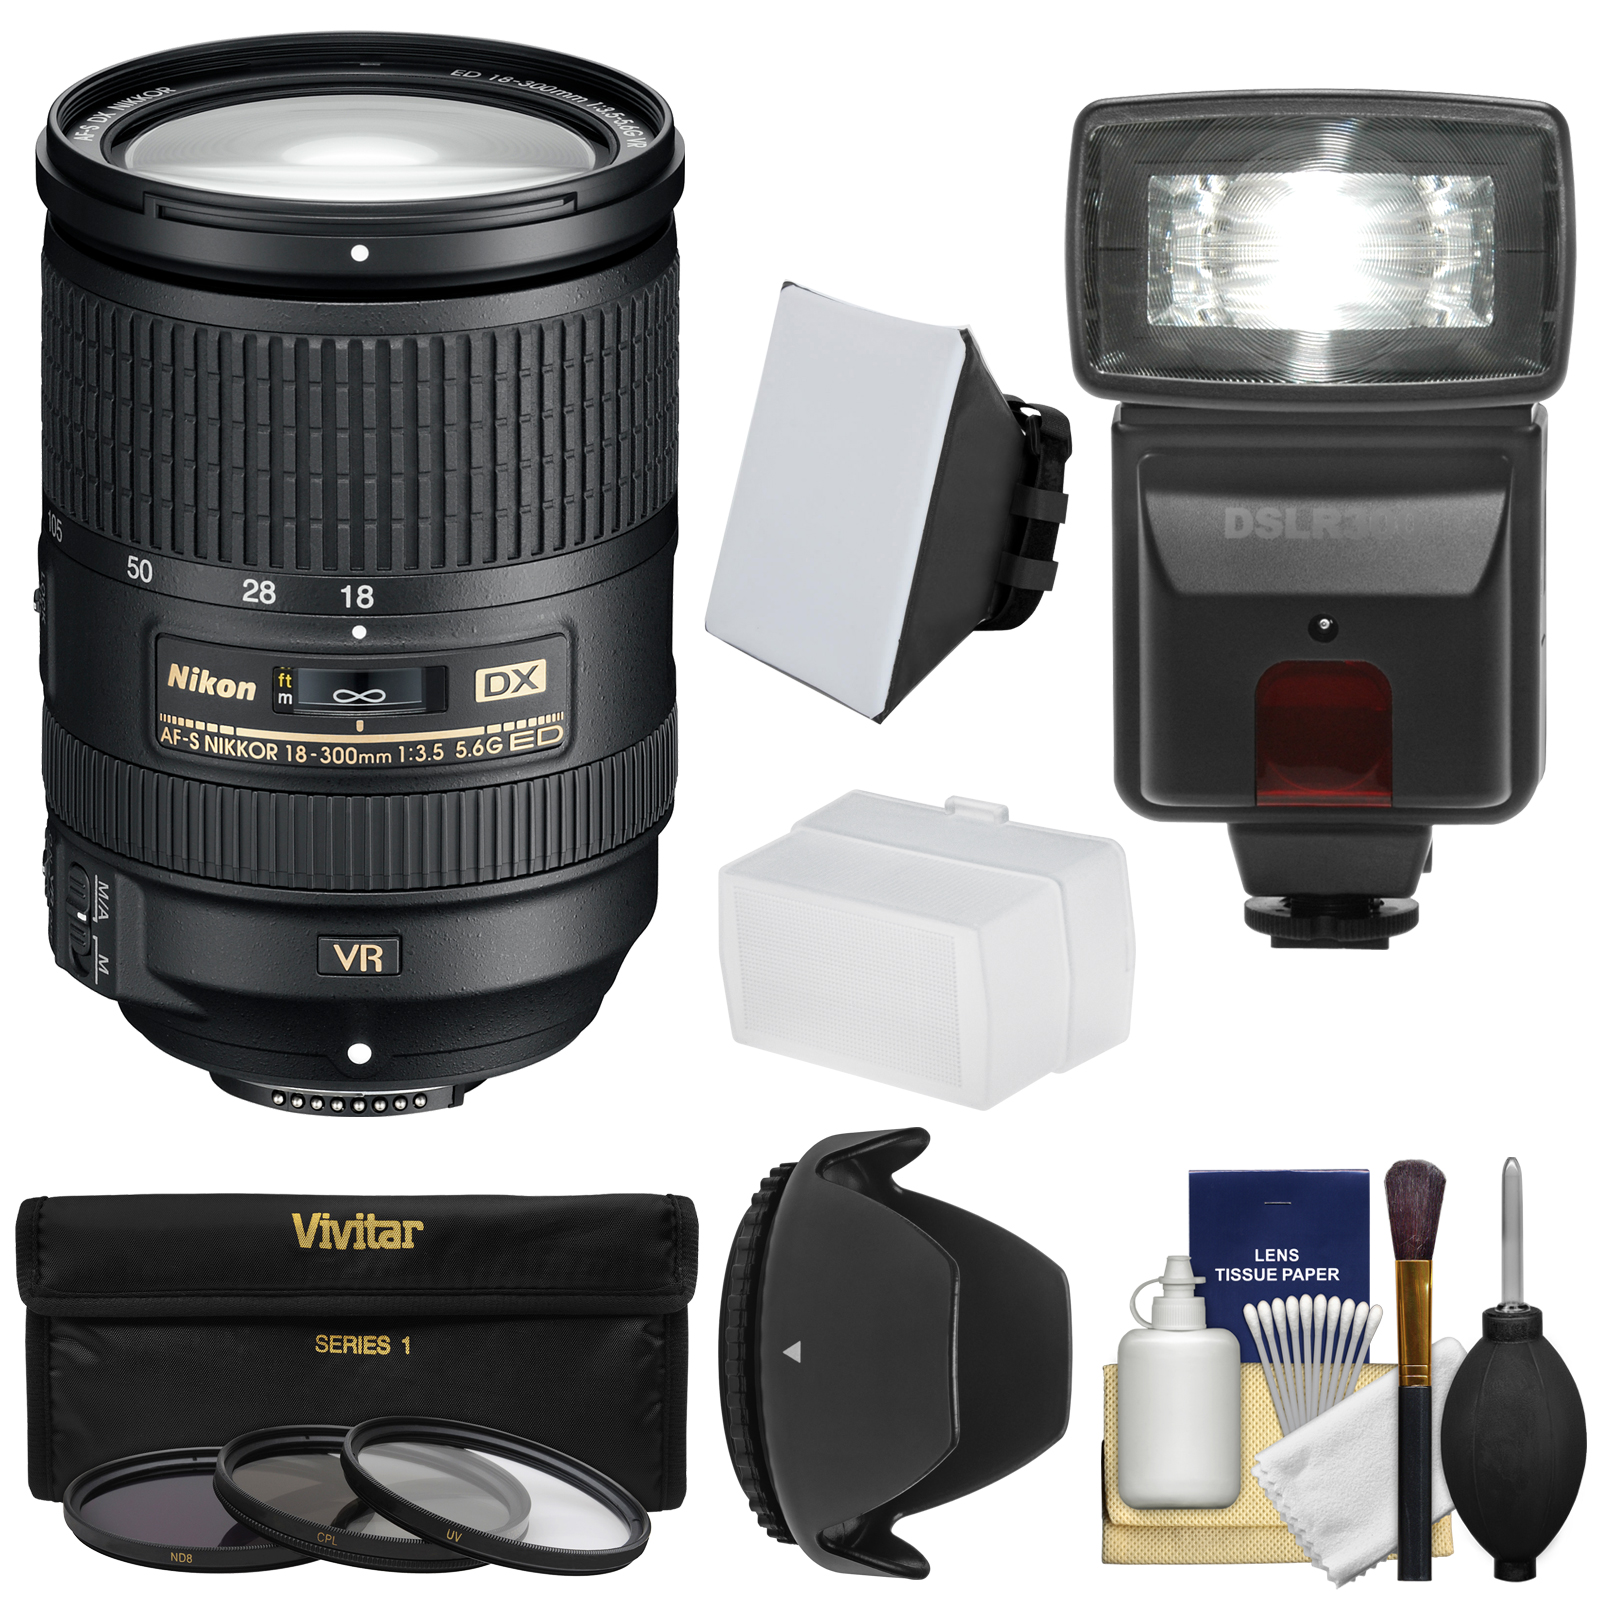 Nikon 18-300mm f/3.5-5.6G VR DX ED AF-S Nikkor-Zoom Lens with 3 Filters + Hood + Flash & 2 Diffusers + Kit for Digital SLR Cameras